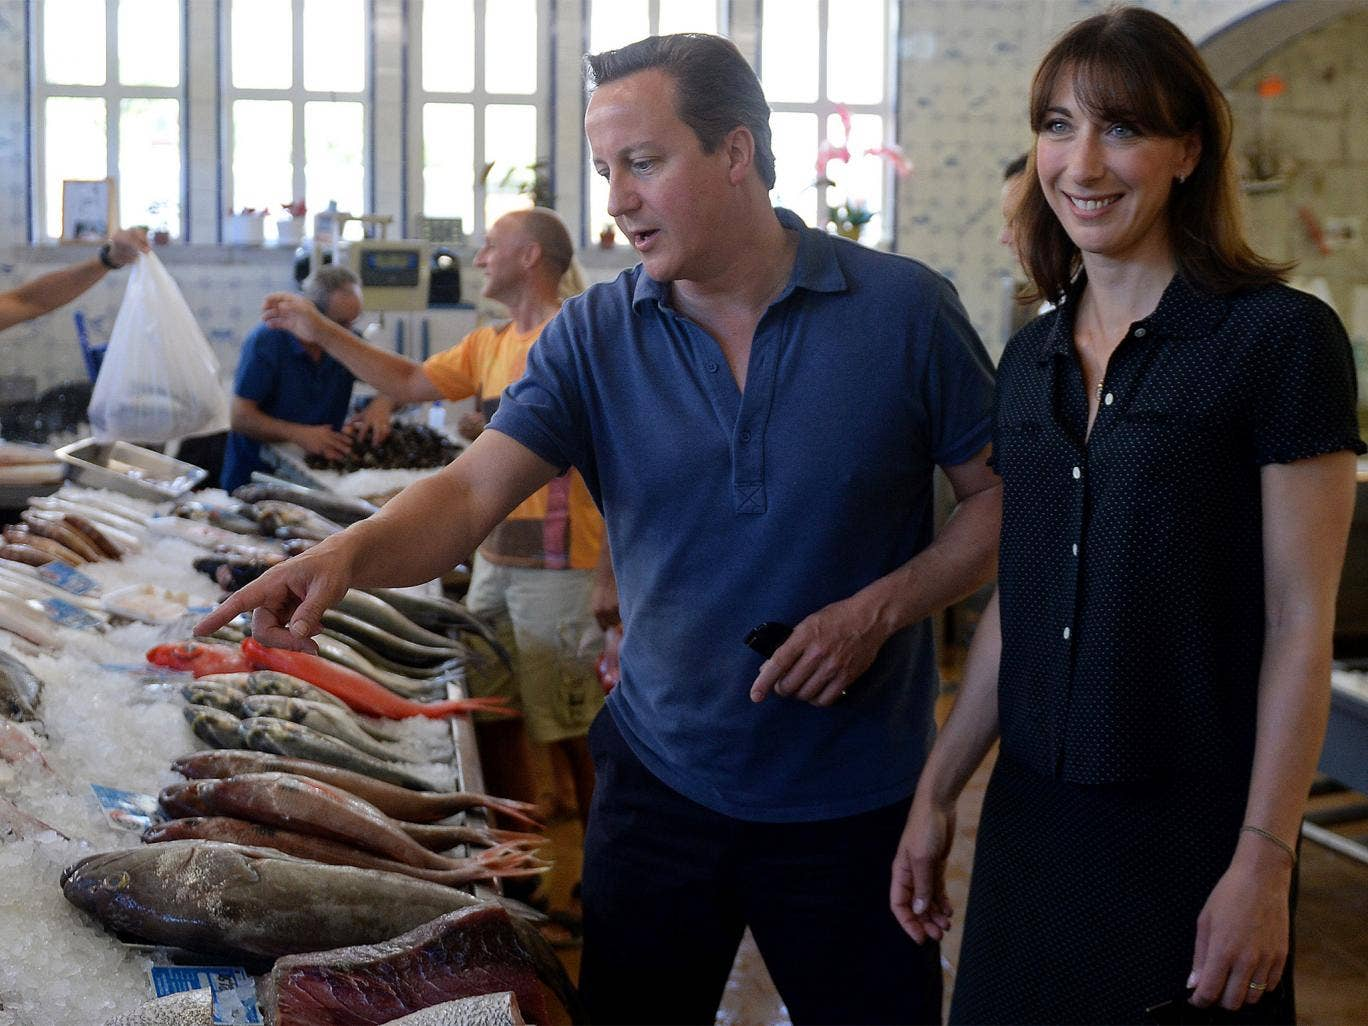 Prime Minister David Cameron  and his wife Samantha are pictured as they visit a seafood market in Cascais in Portugal, on August 5, 2014